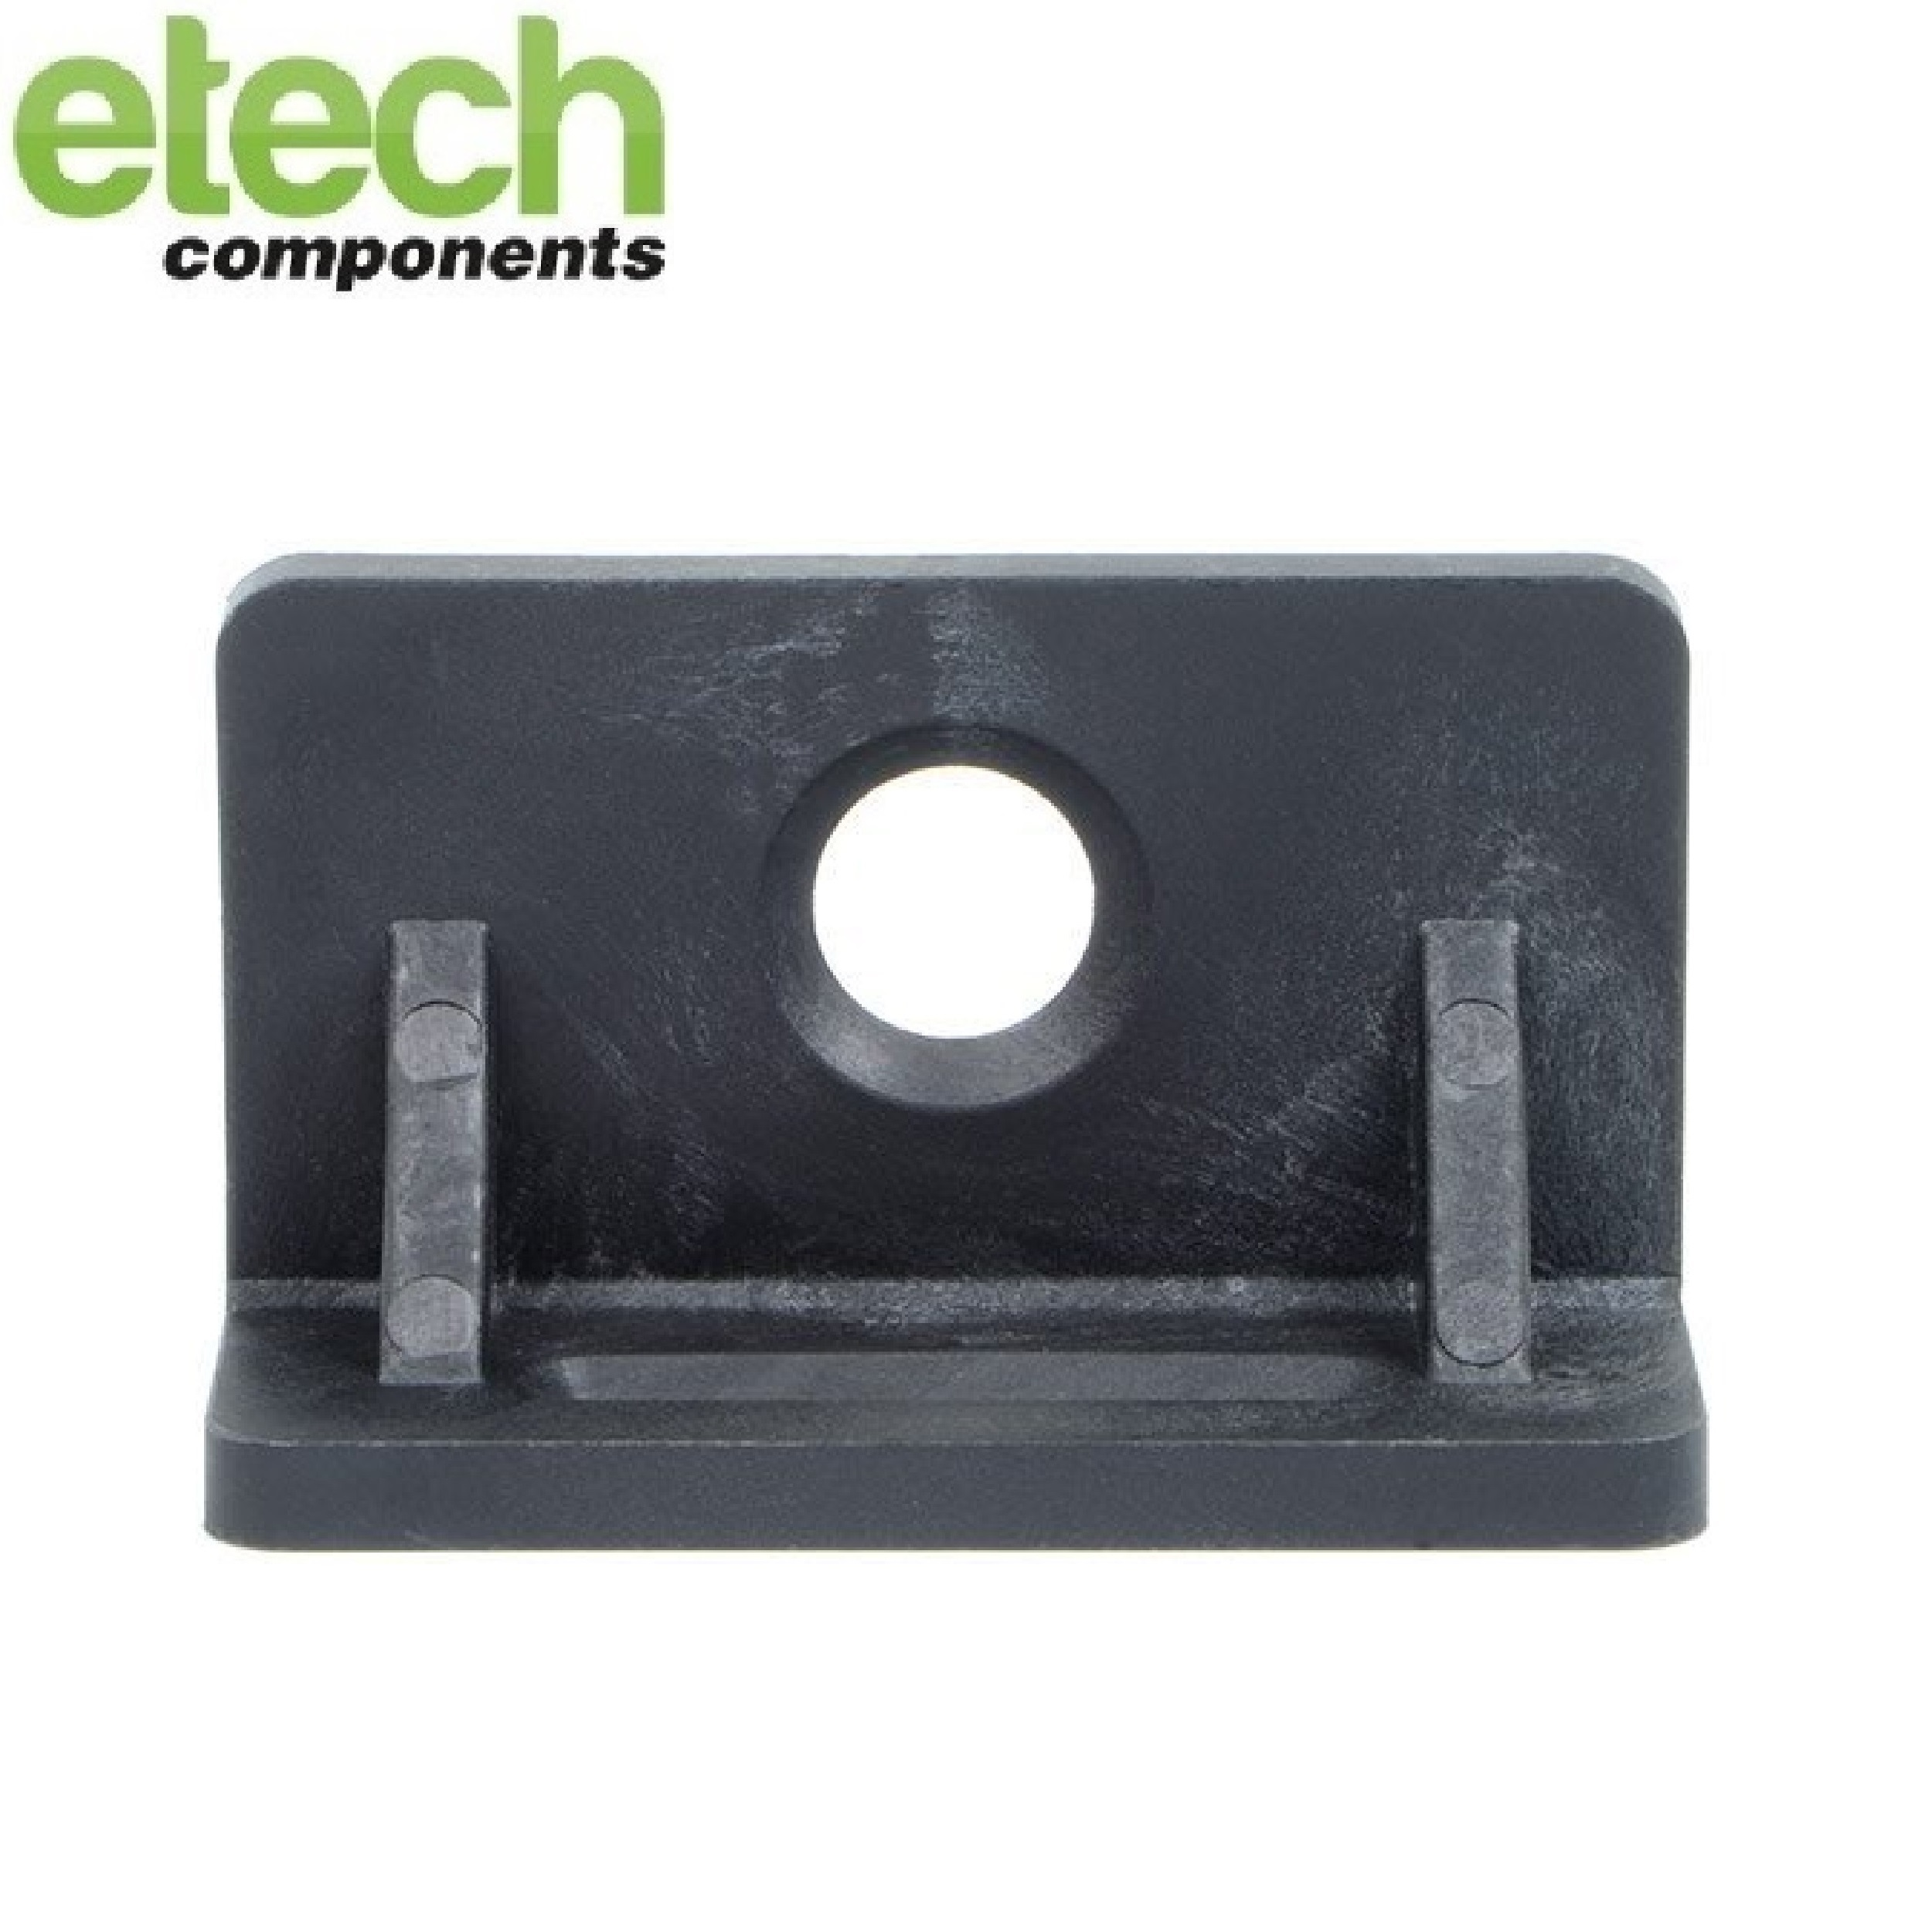 Dutchclamp Polefix E Tech Components